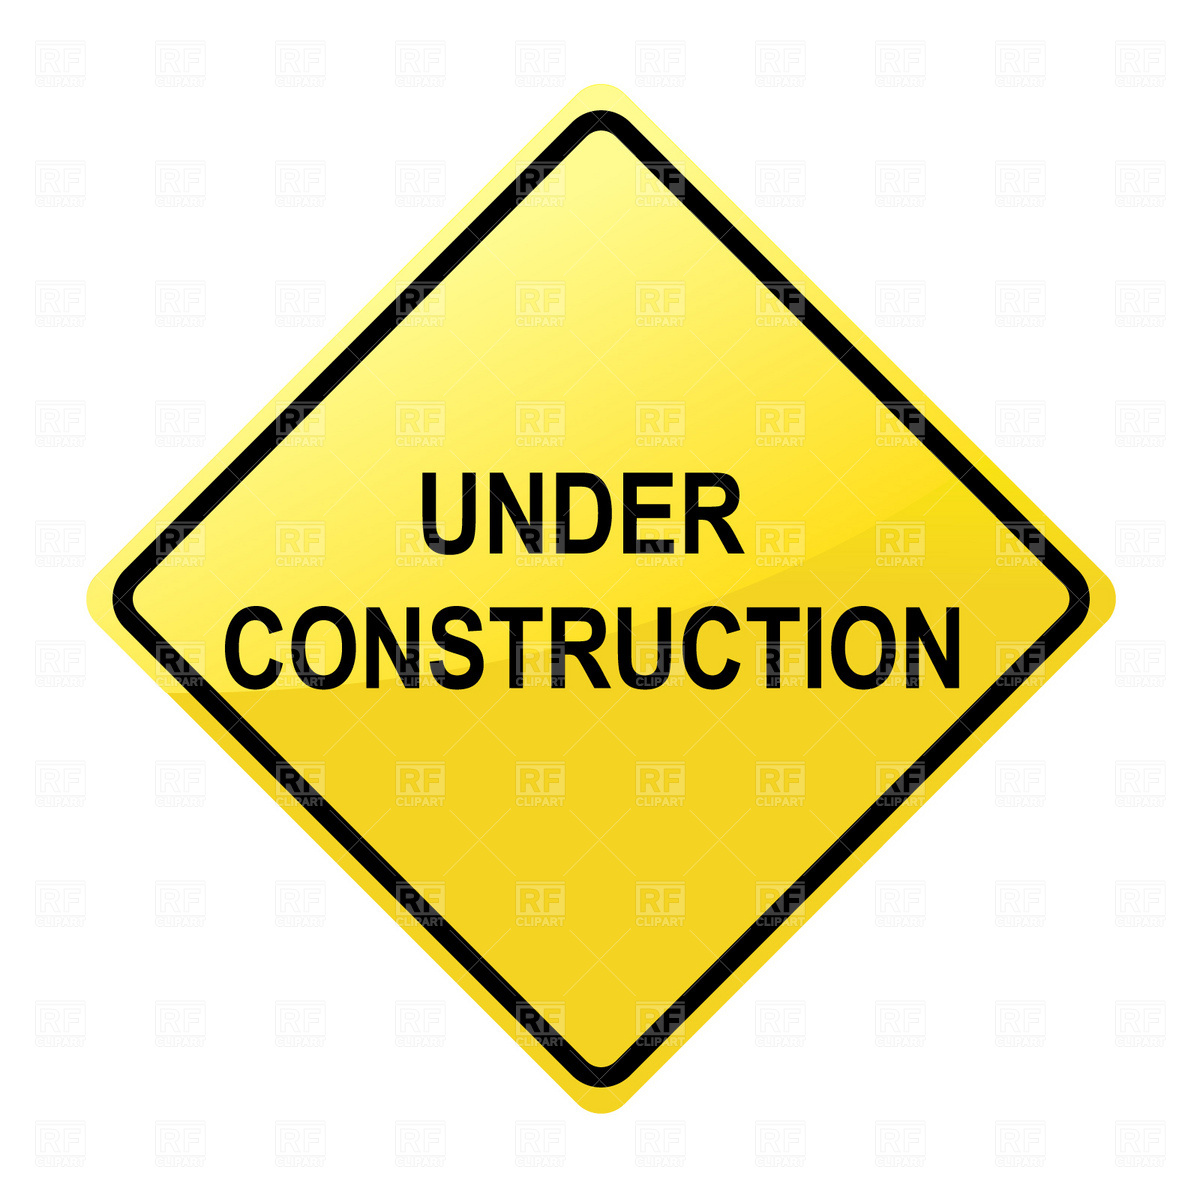 11 Free Under Construction Vector Images